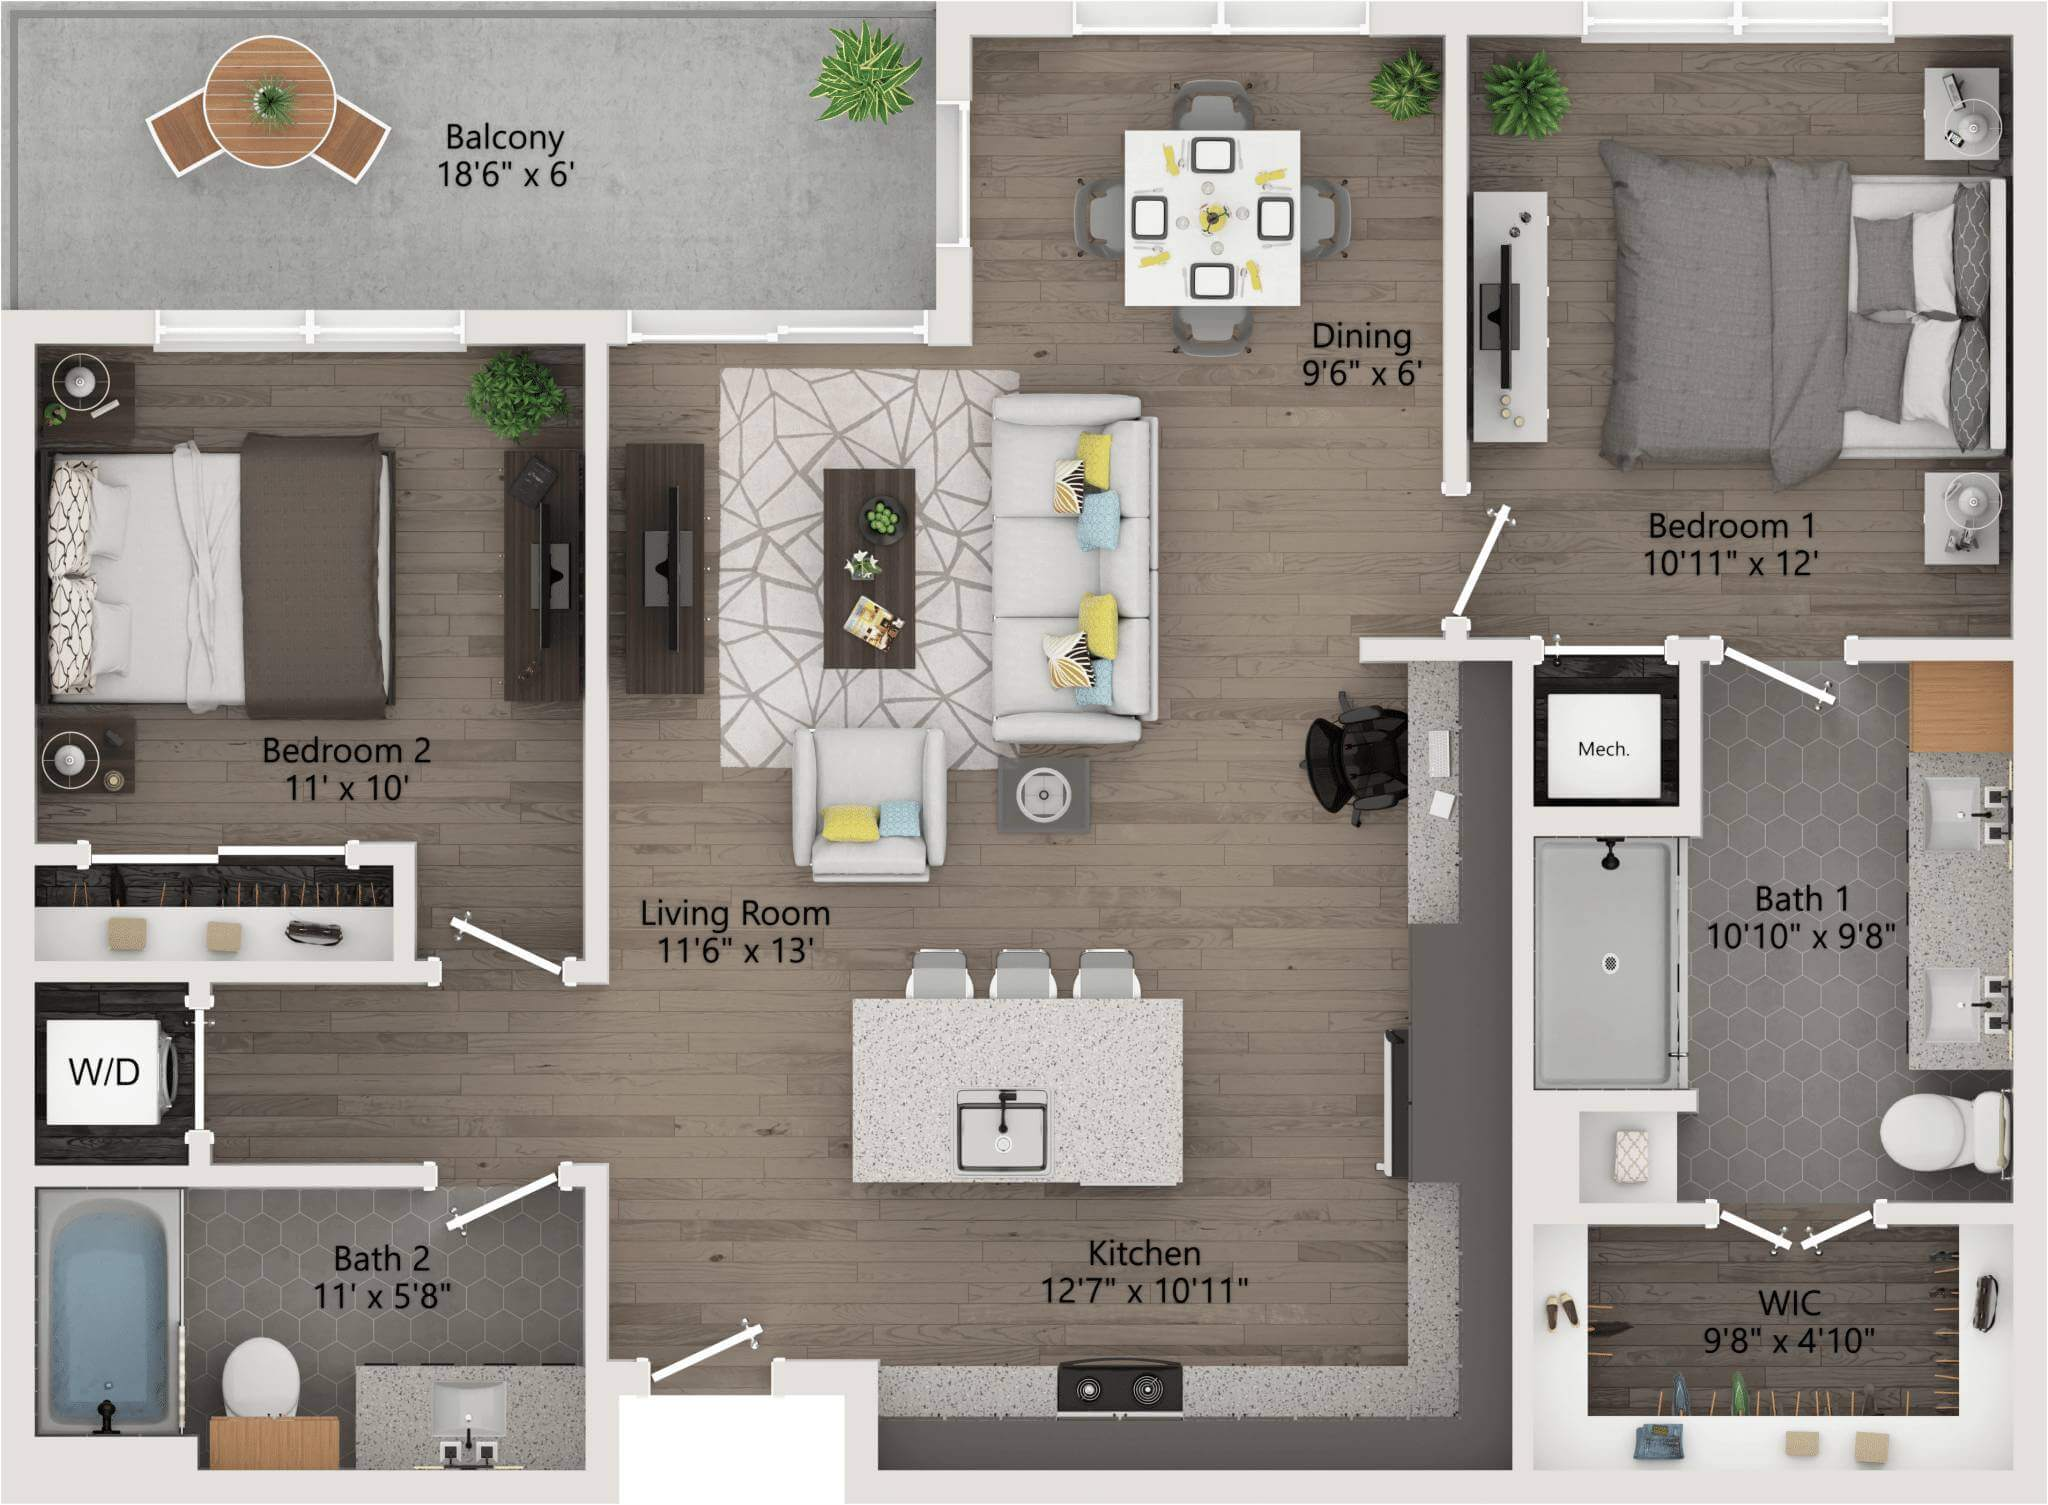 two Bedroom 1,052ft,111ft,patio